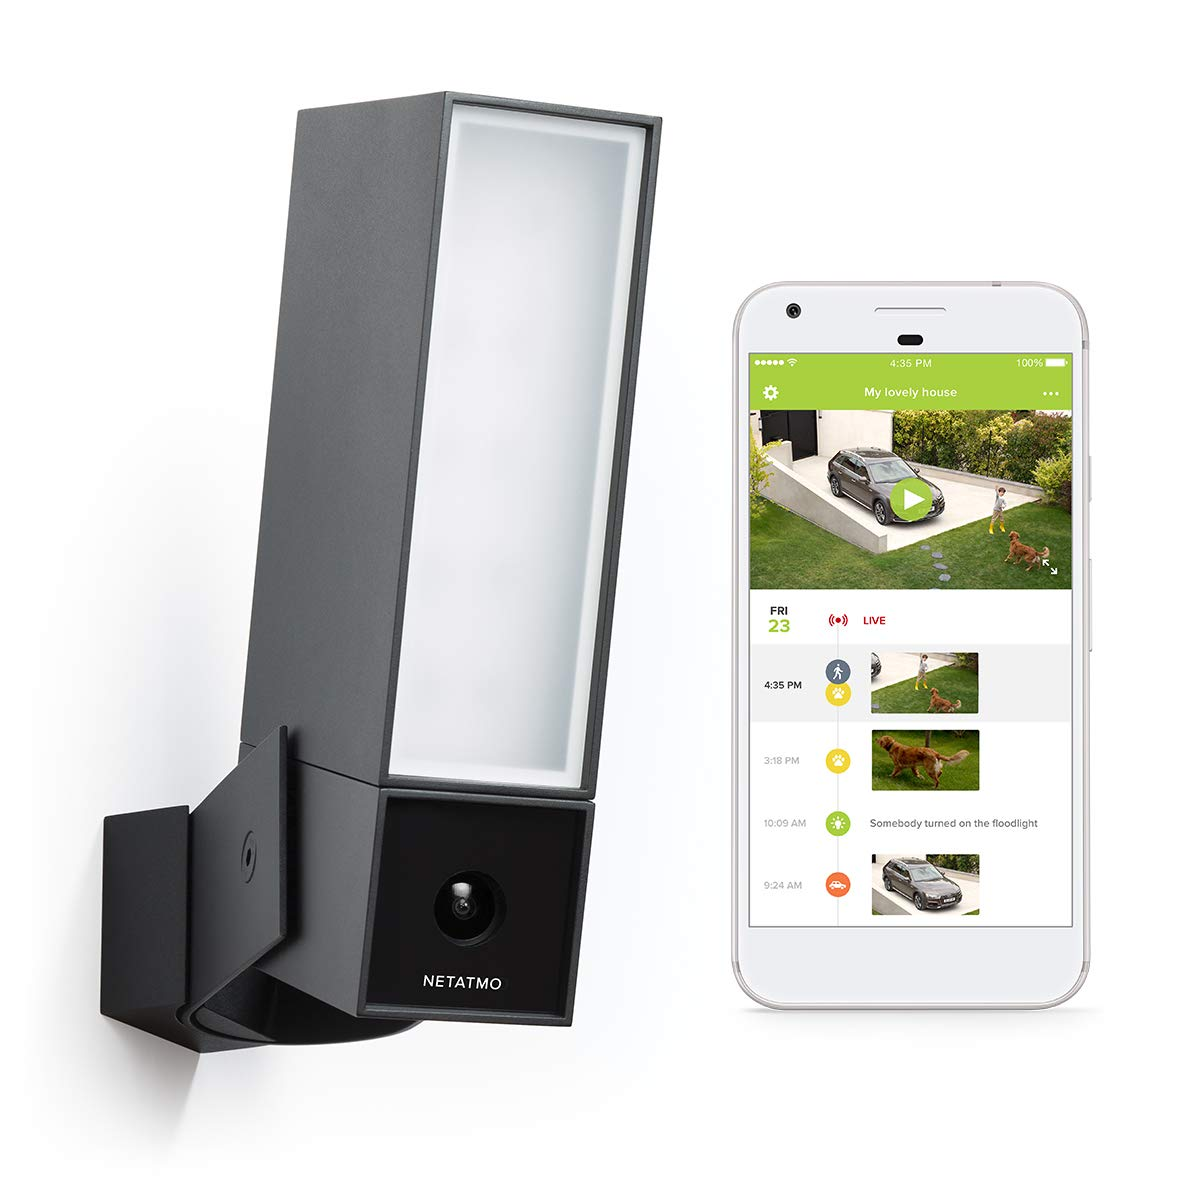 Smart Outdoor Security Camera with Integrated floodlight - Netatmo Presence by Netatmo